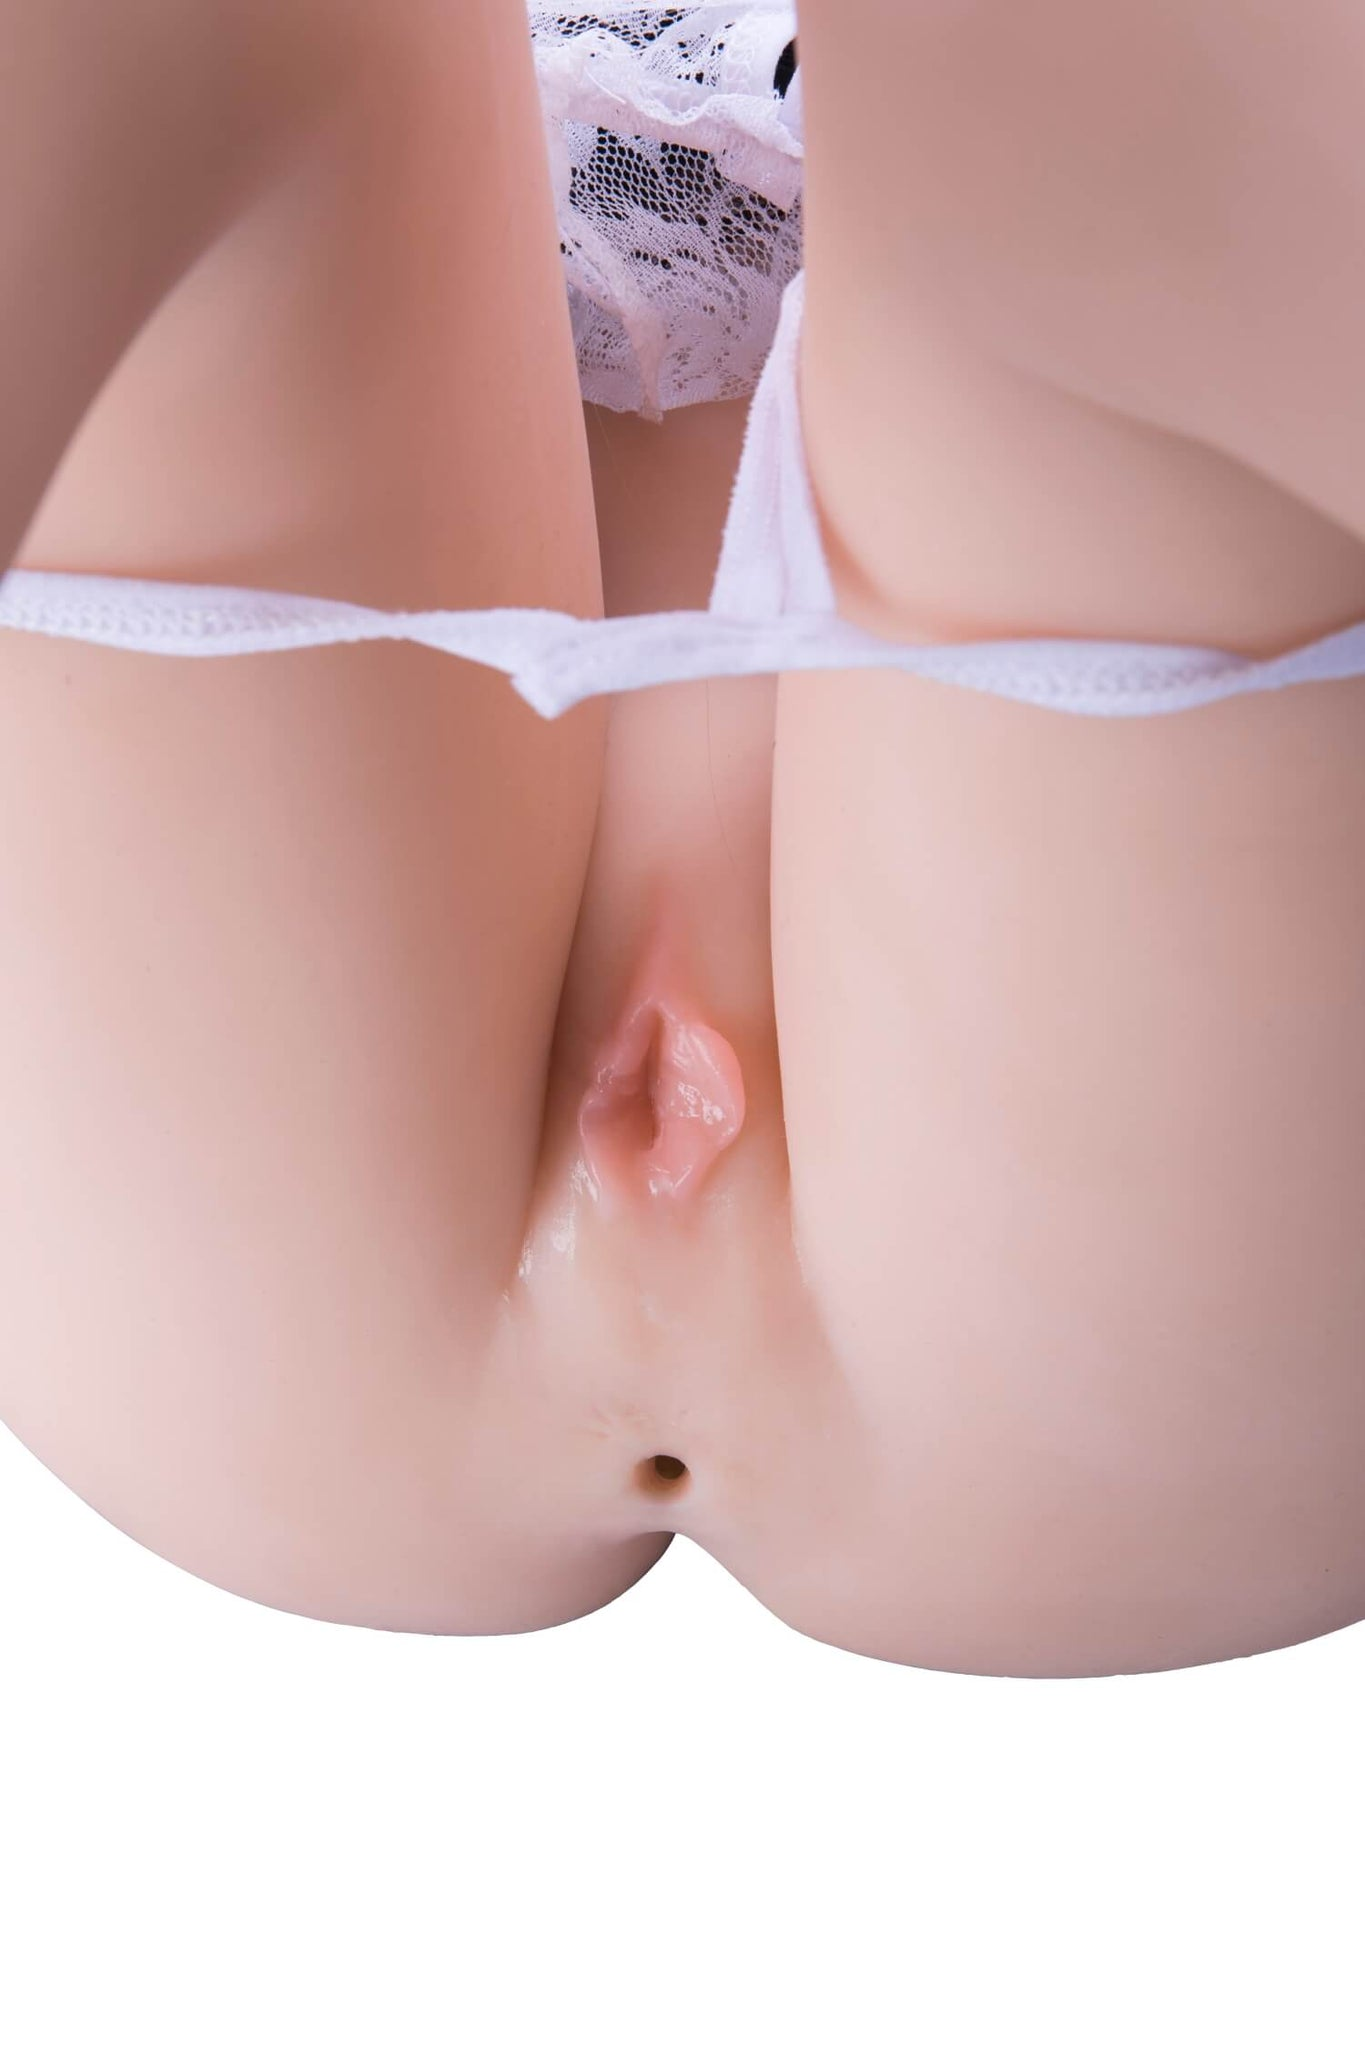 Joe School Sex Doll - Cute Doll for Sex